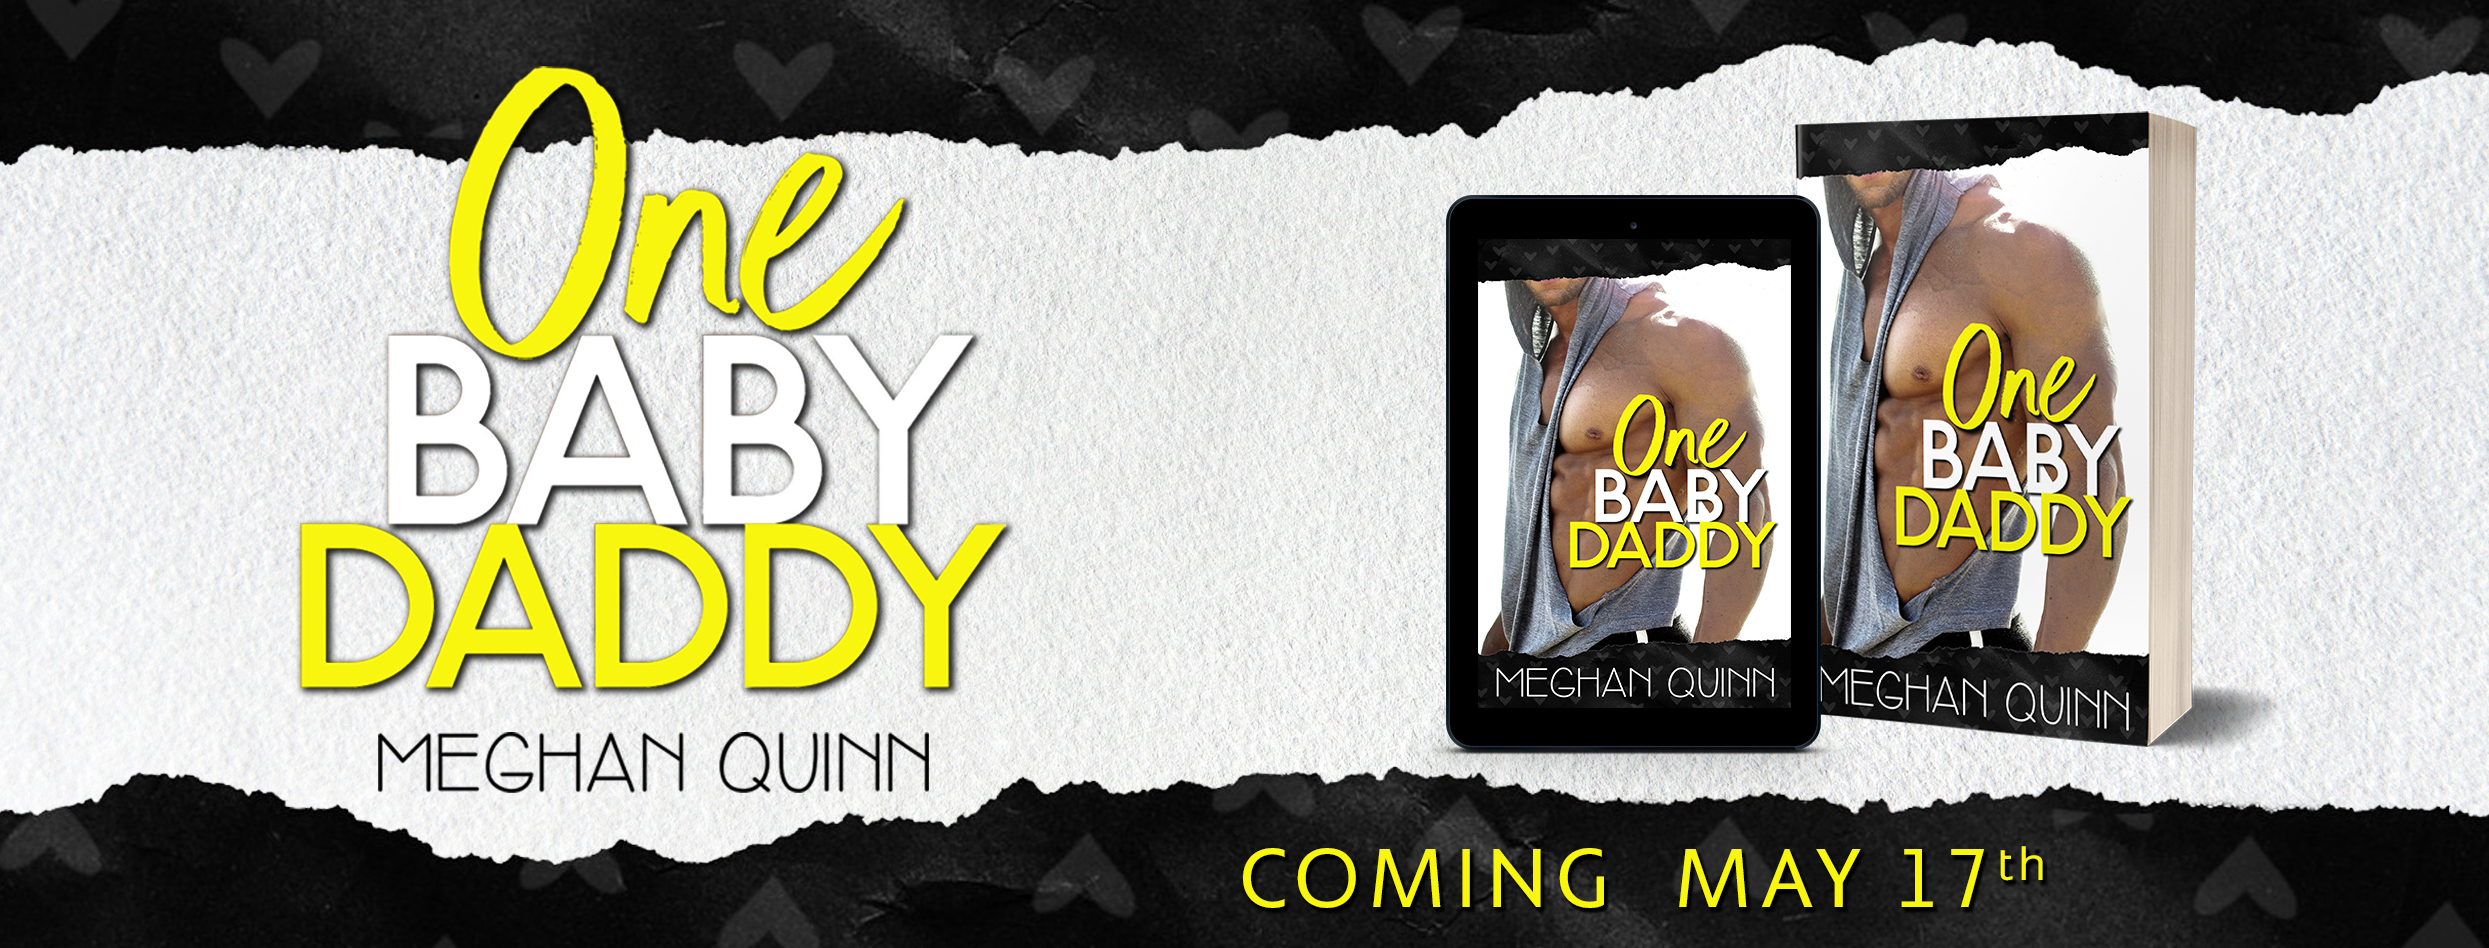 One Baby Daddy May17banner